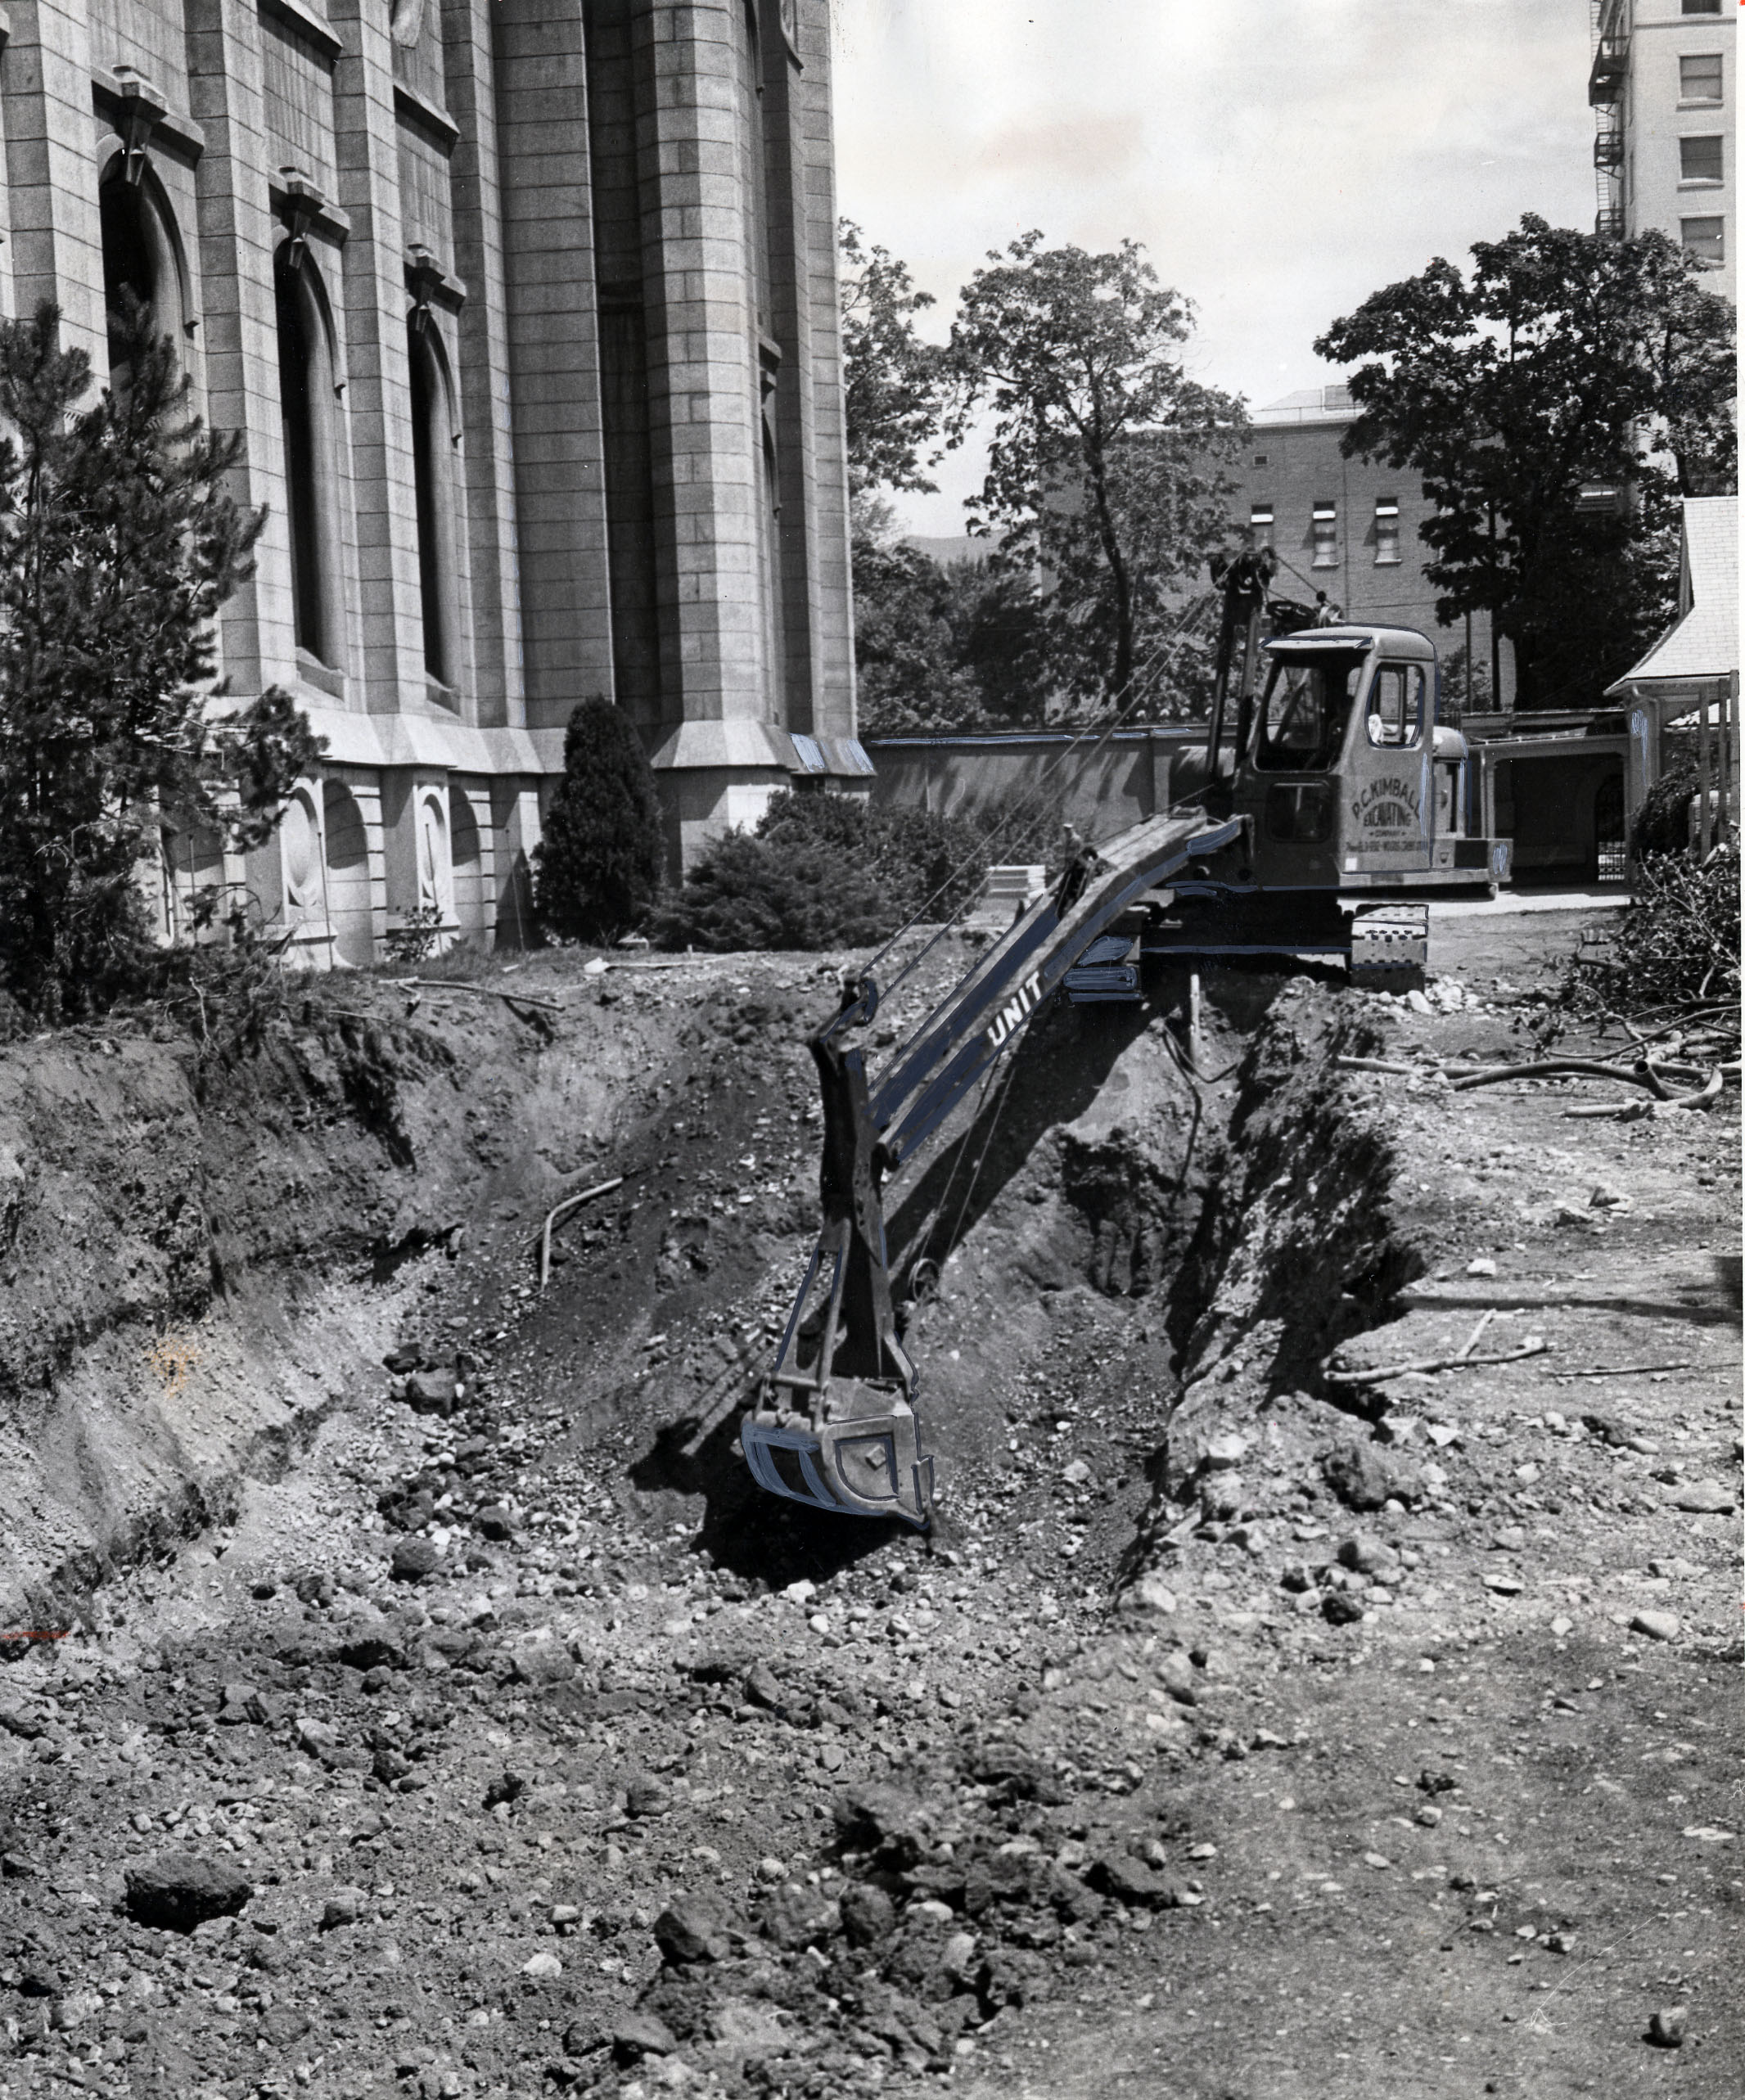 Scoop shovel makes dirt fly on south side of Salt Lake Temple as new renovation work gets underway. Aug. 13, 1962 W. Claudell Johnson, Deseret News